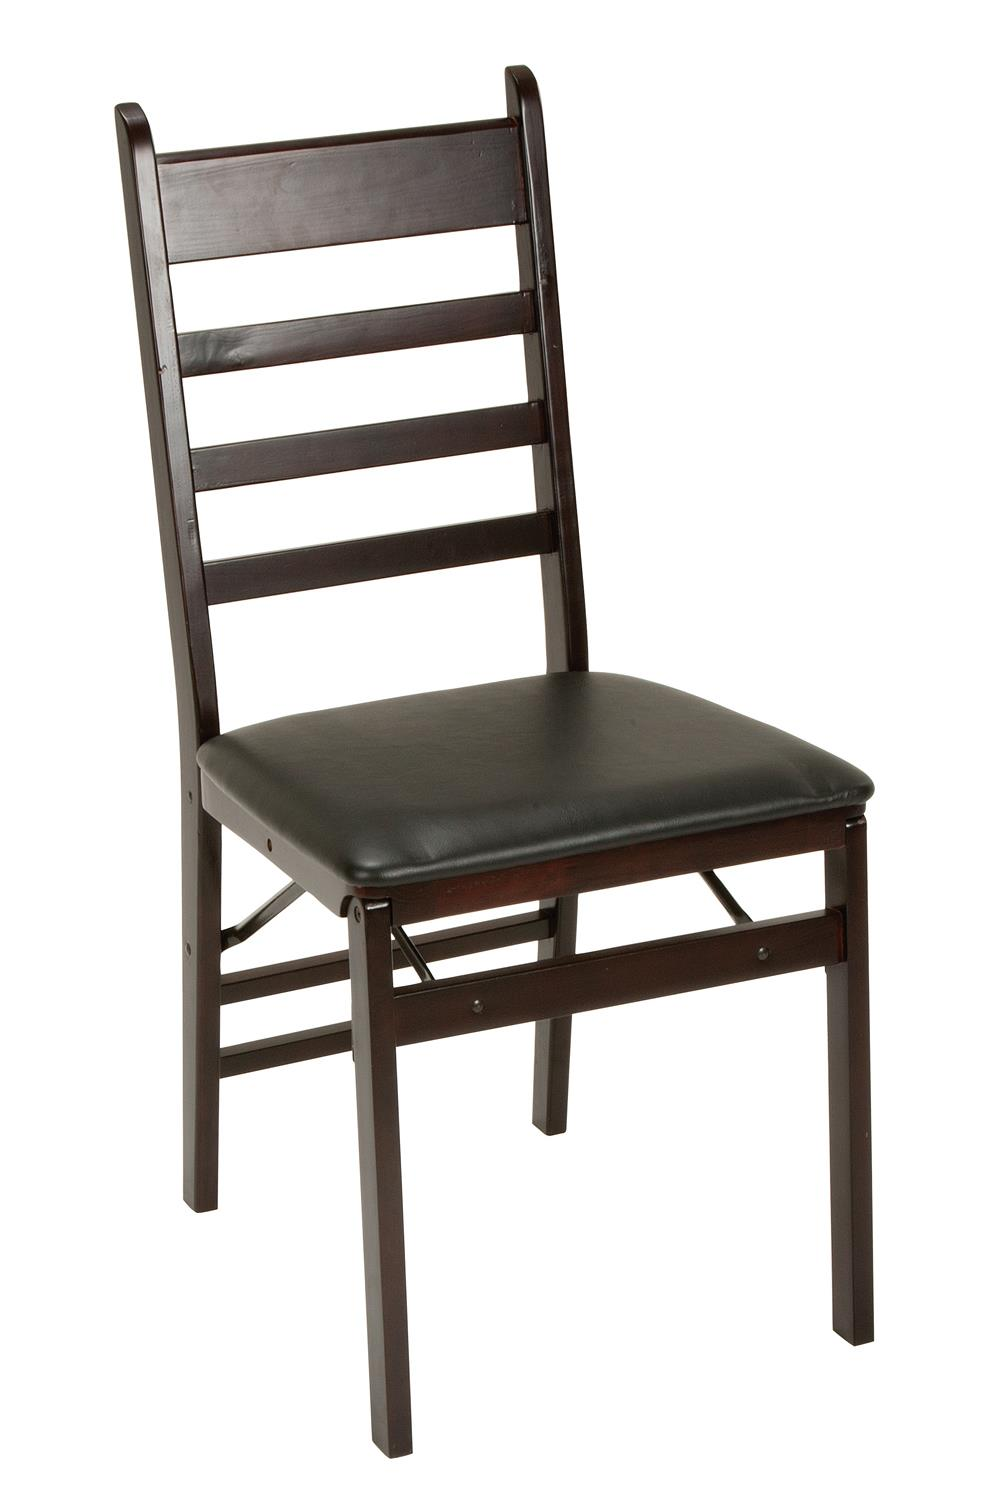 Cosco Ladder Back Wood Folding Chair, Espresso/Black, Set Of 2